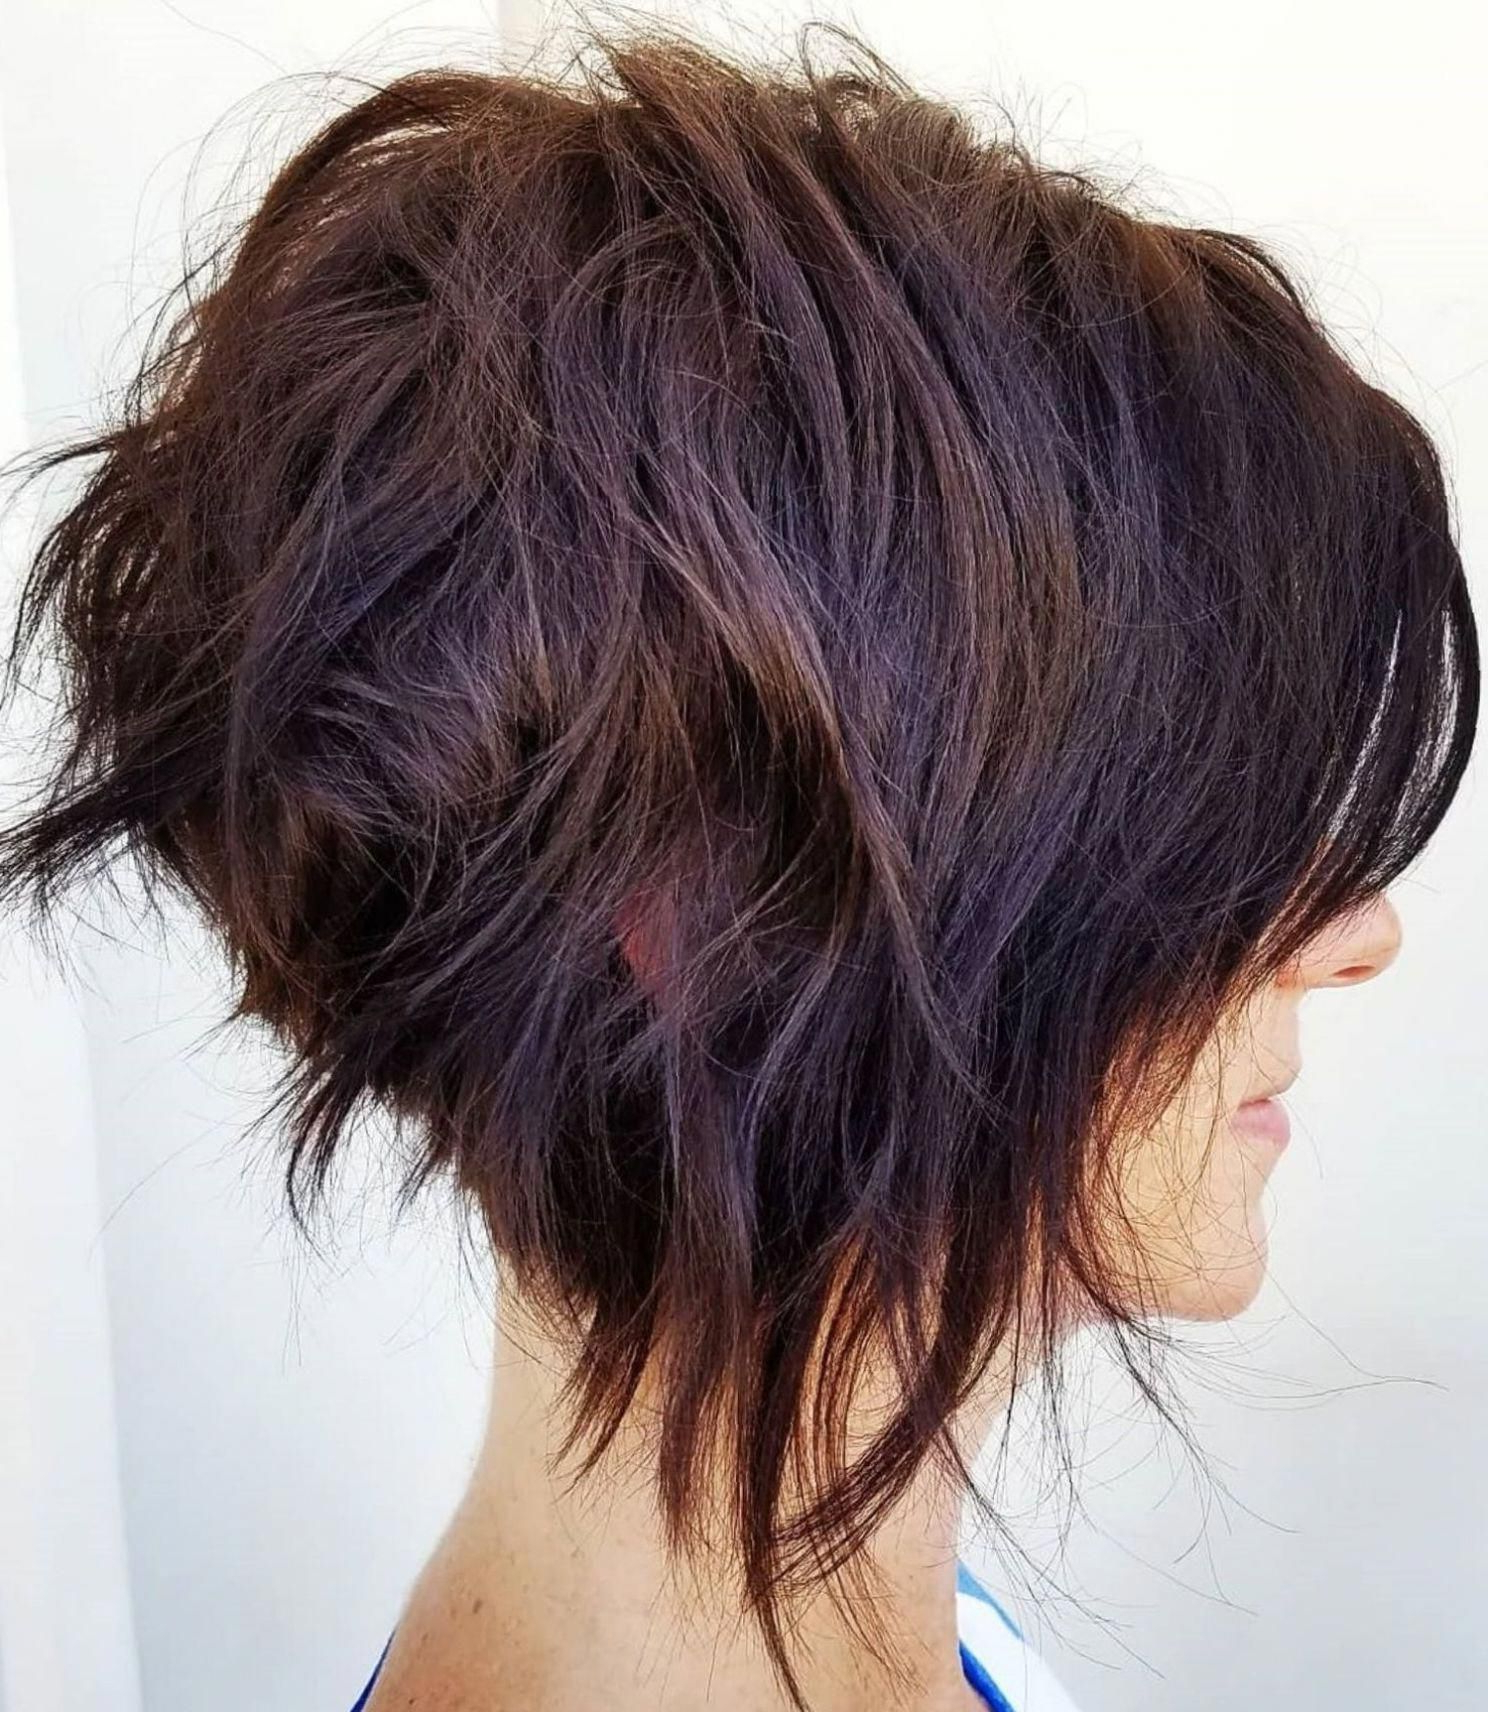 Latest Marvelous Mauve Shaggy Bob Hairstyles Throughout Uneven Tousled Burgundy Brown Bob (View 5 of 20)